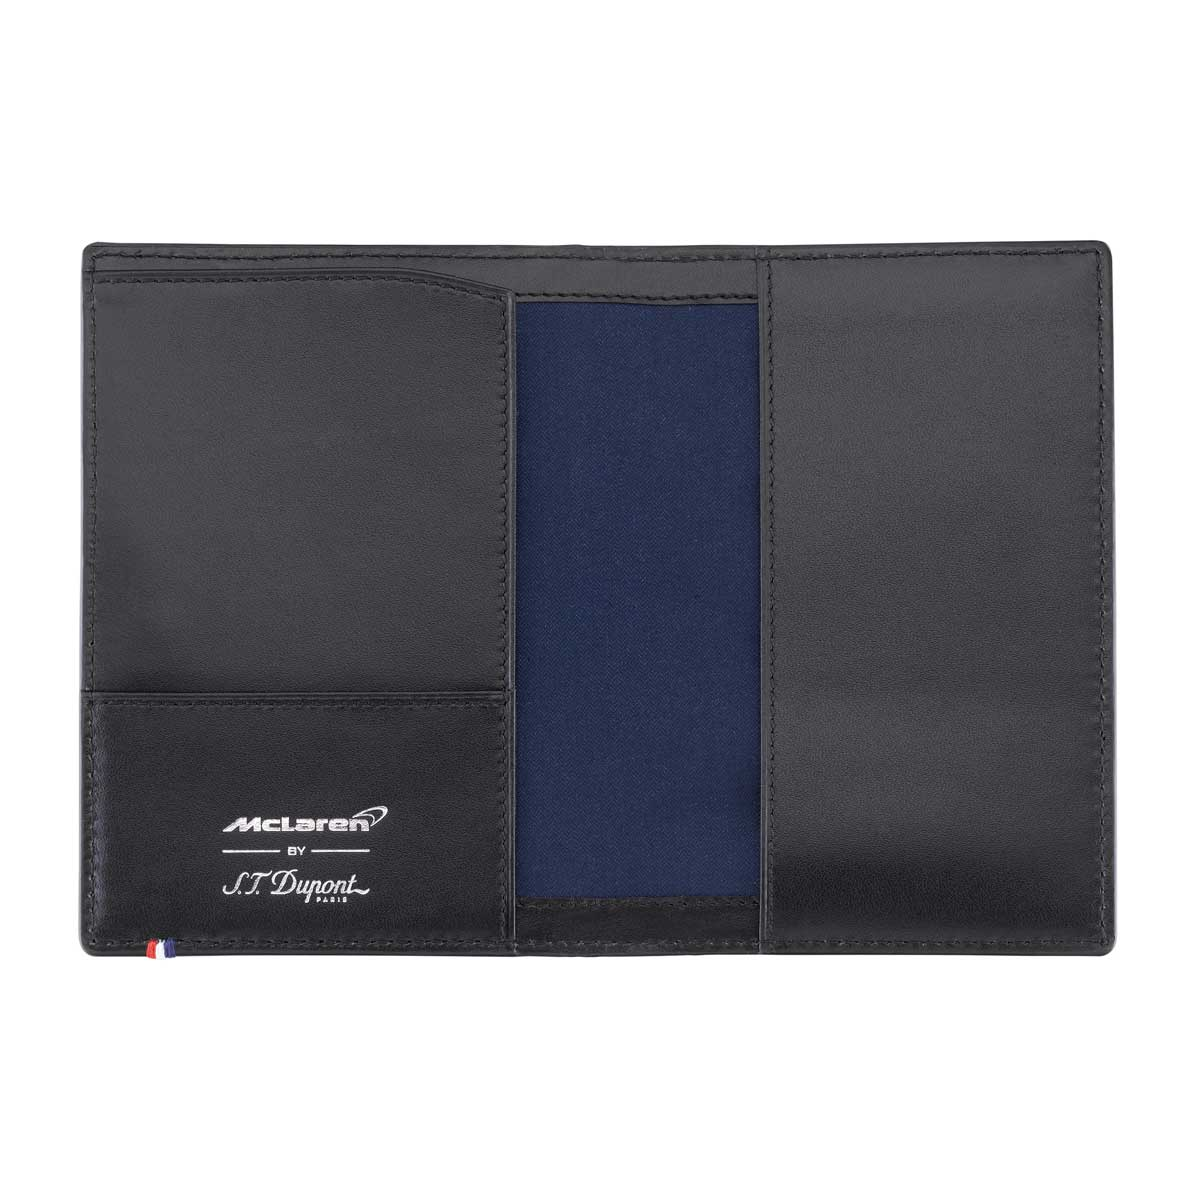 ST Dupont McLaren Passport Cover - Perforated Leather - Limited Edition